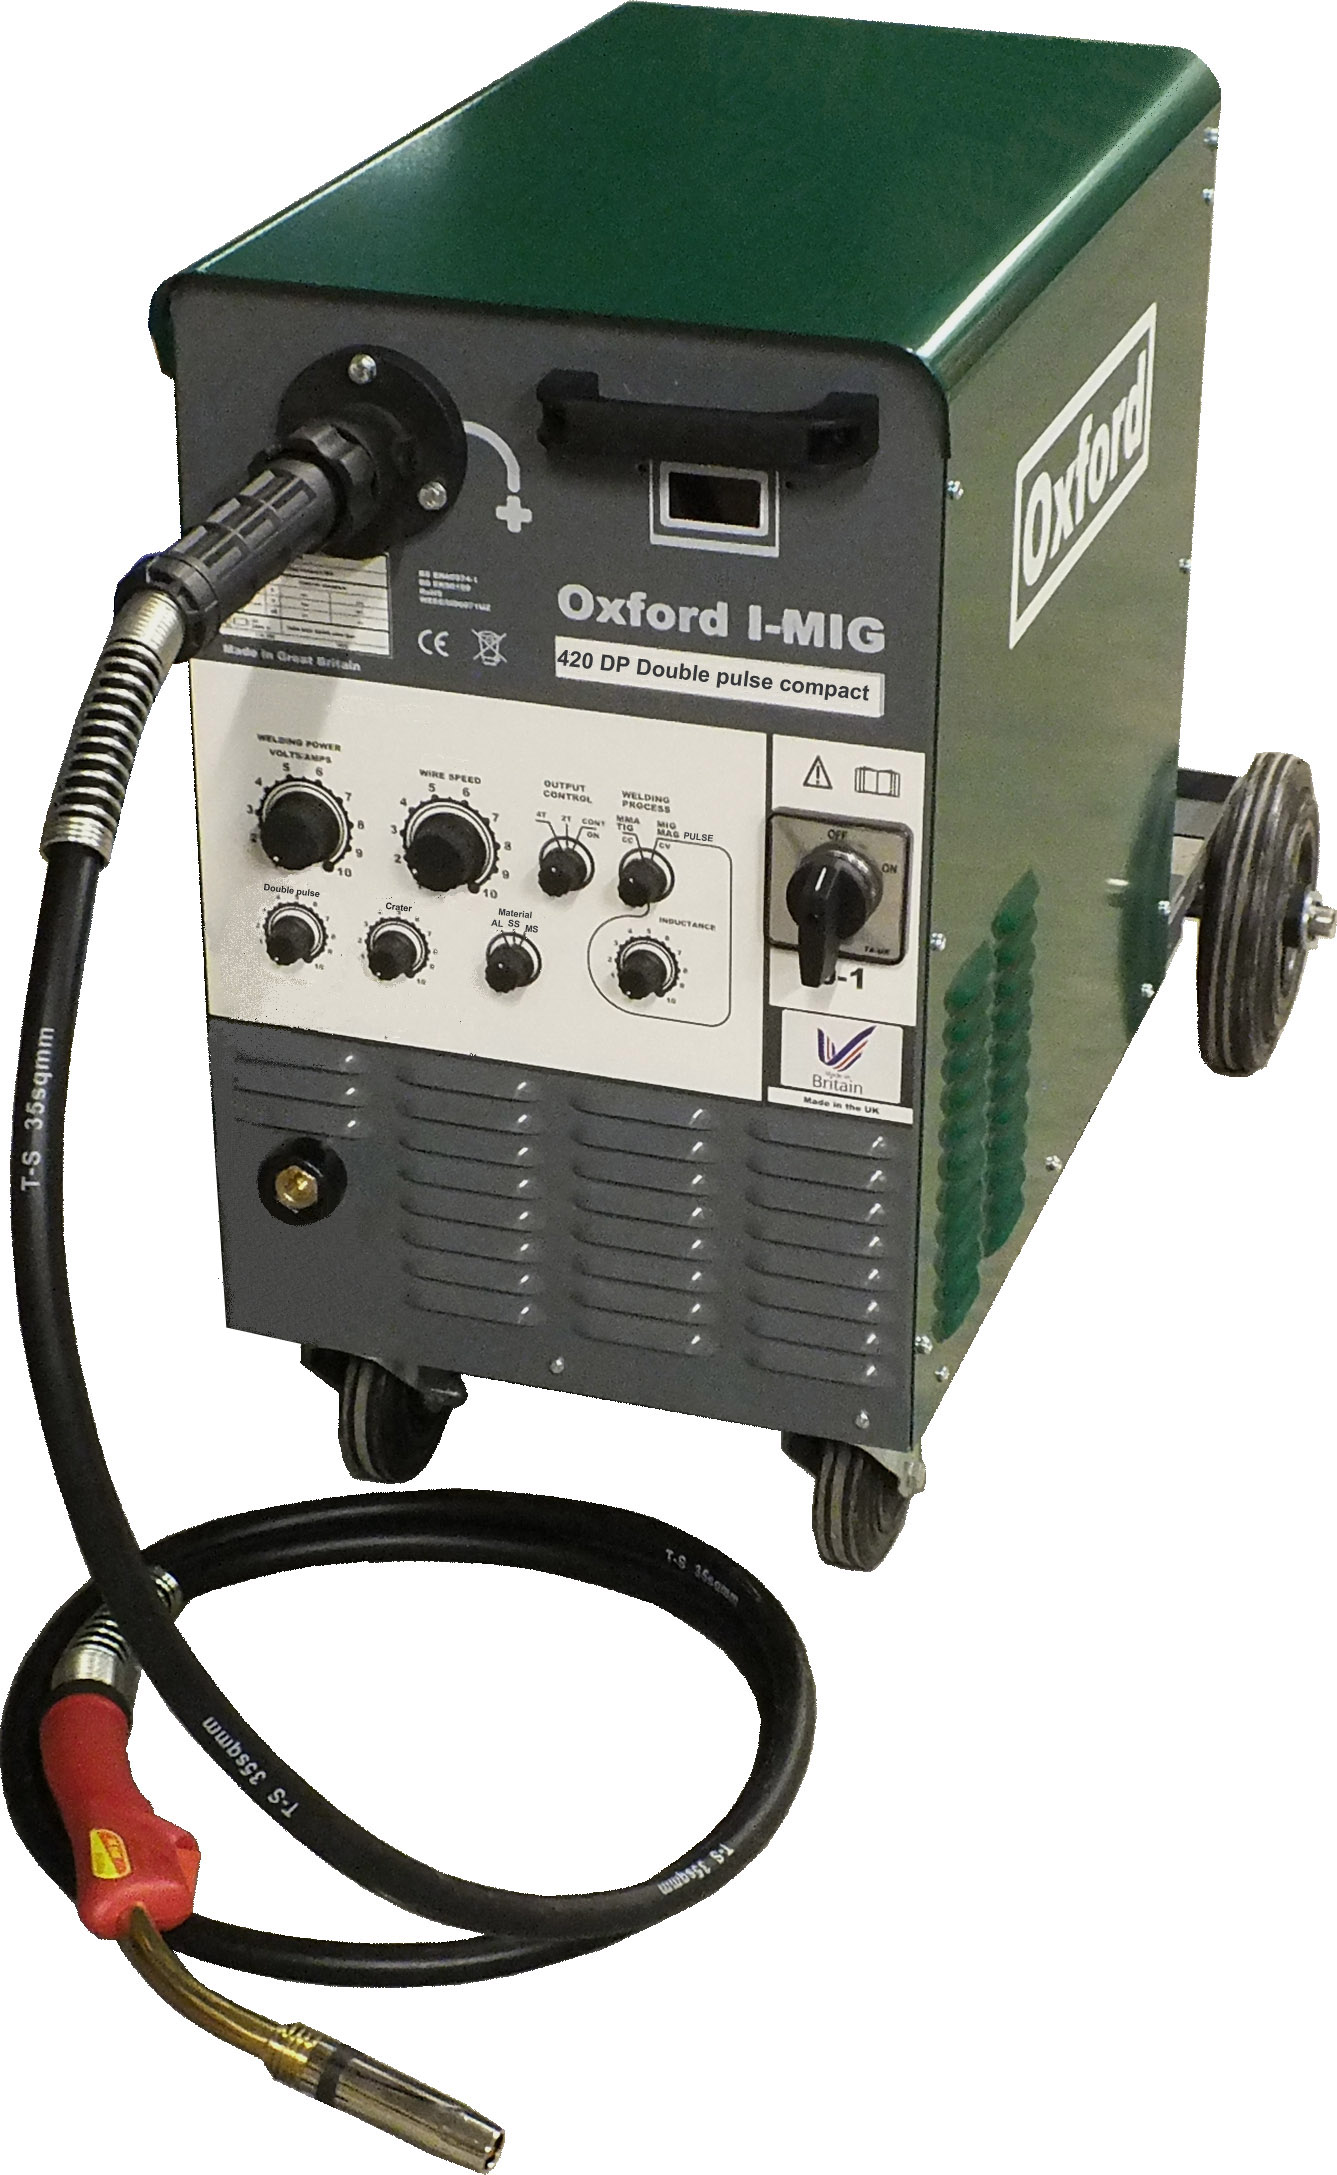 Oxford I-MIG 330 DP dual voltage Image